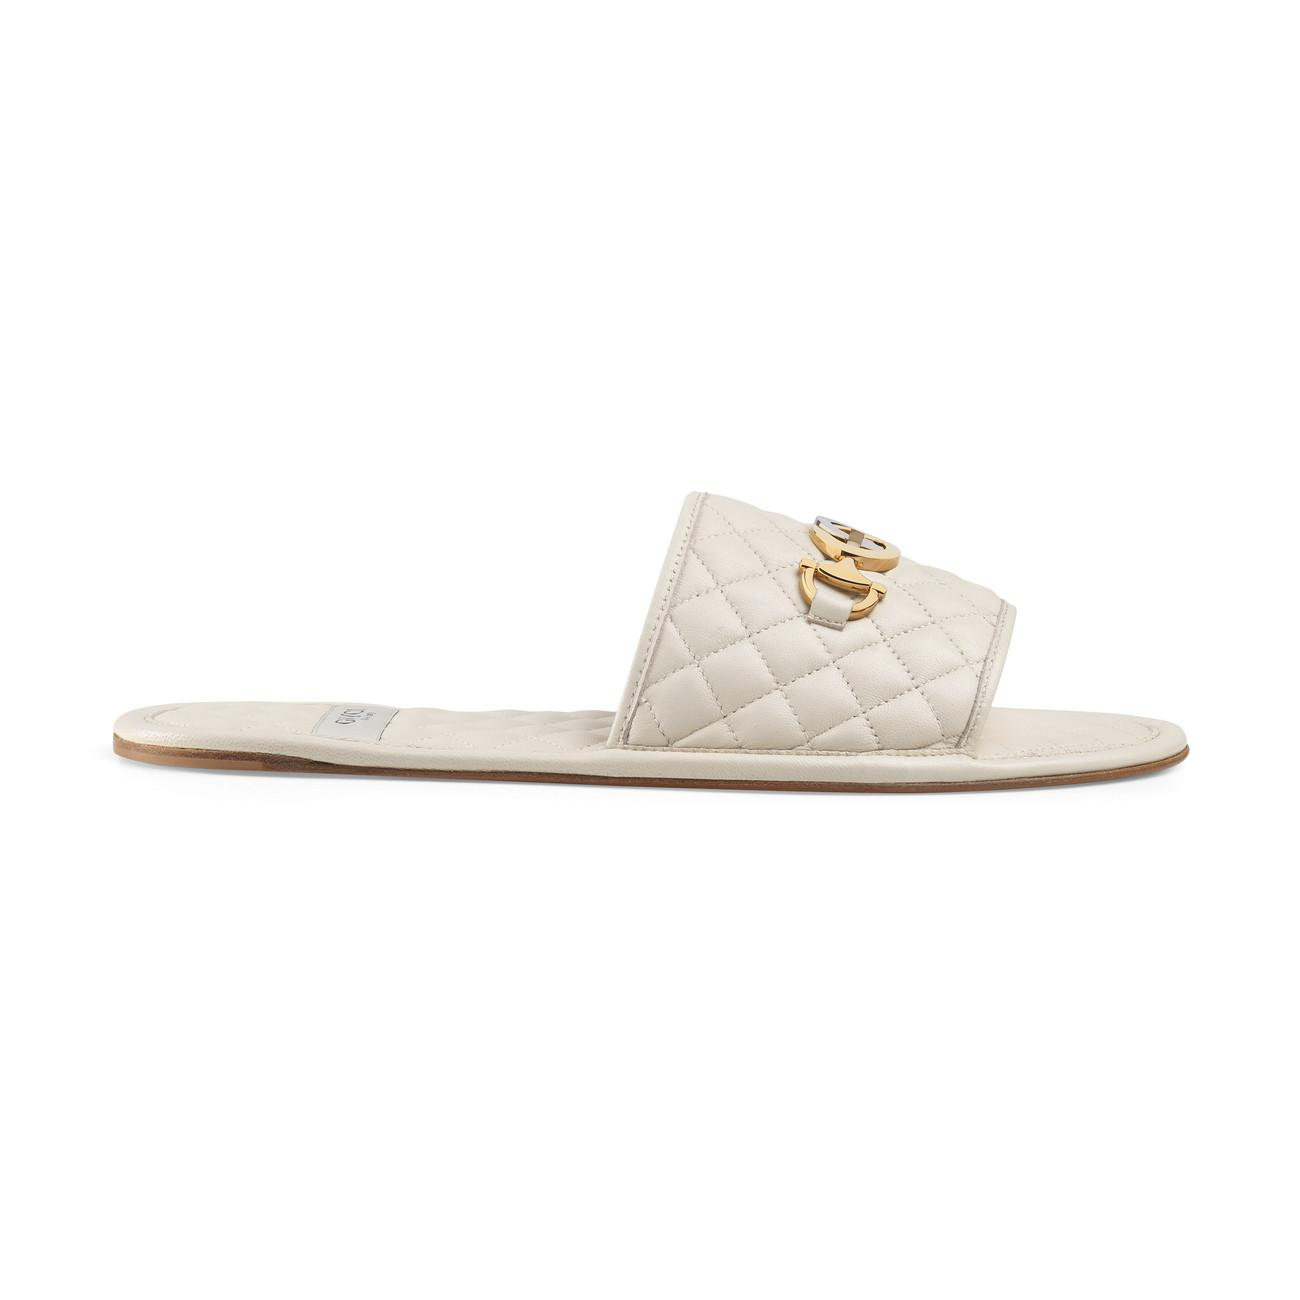 2a6f3ea12 Lyst - Gucci Quilted Slide Sandal With Interlocking G Horsebit in White